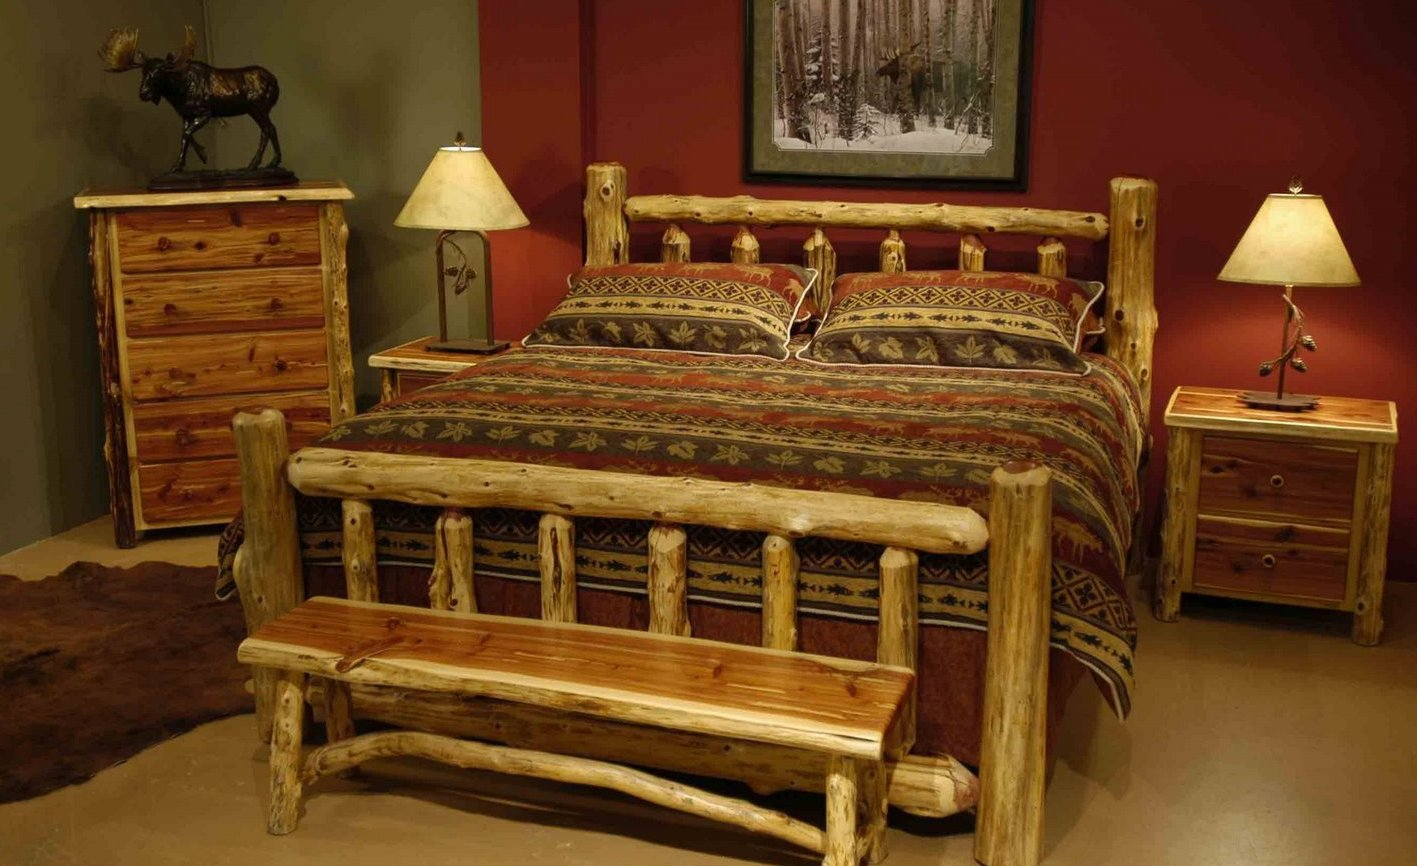 Home Priority Homey Feeling Of Rustic Bed Frames Ideas